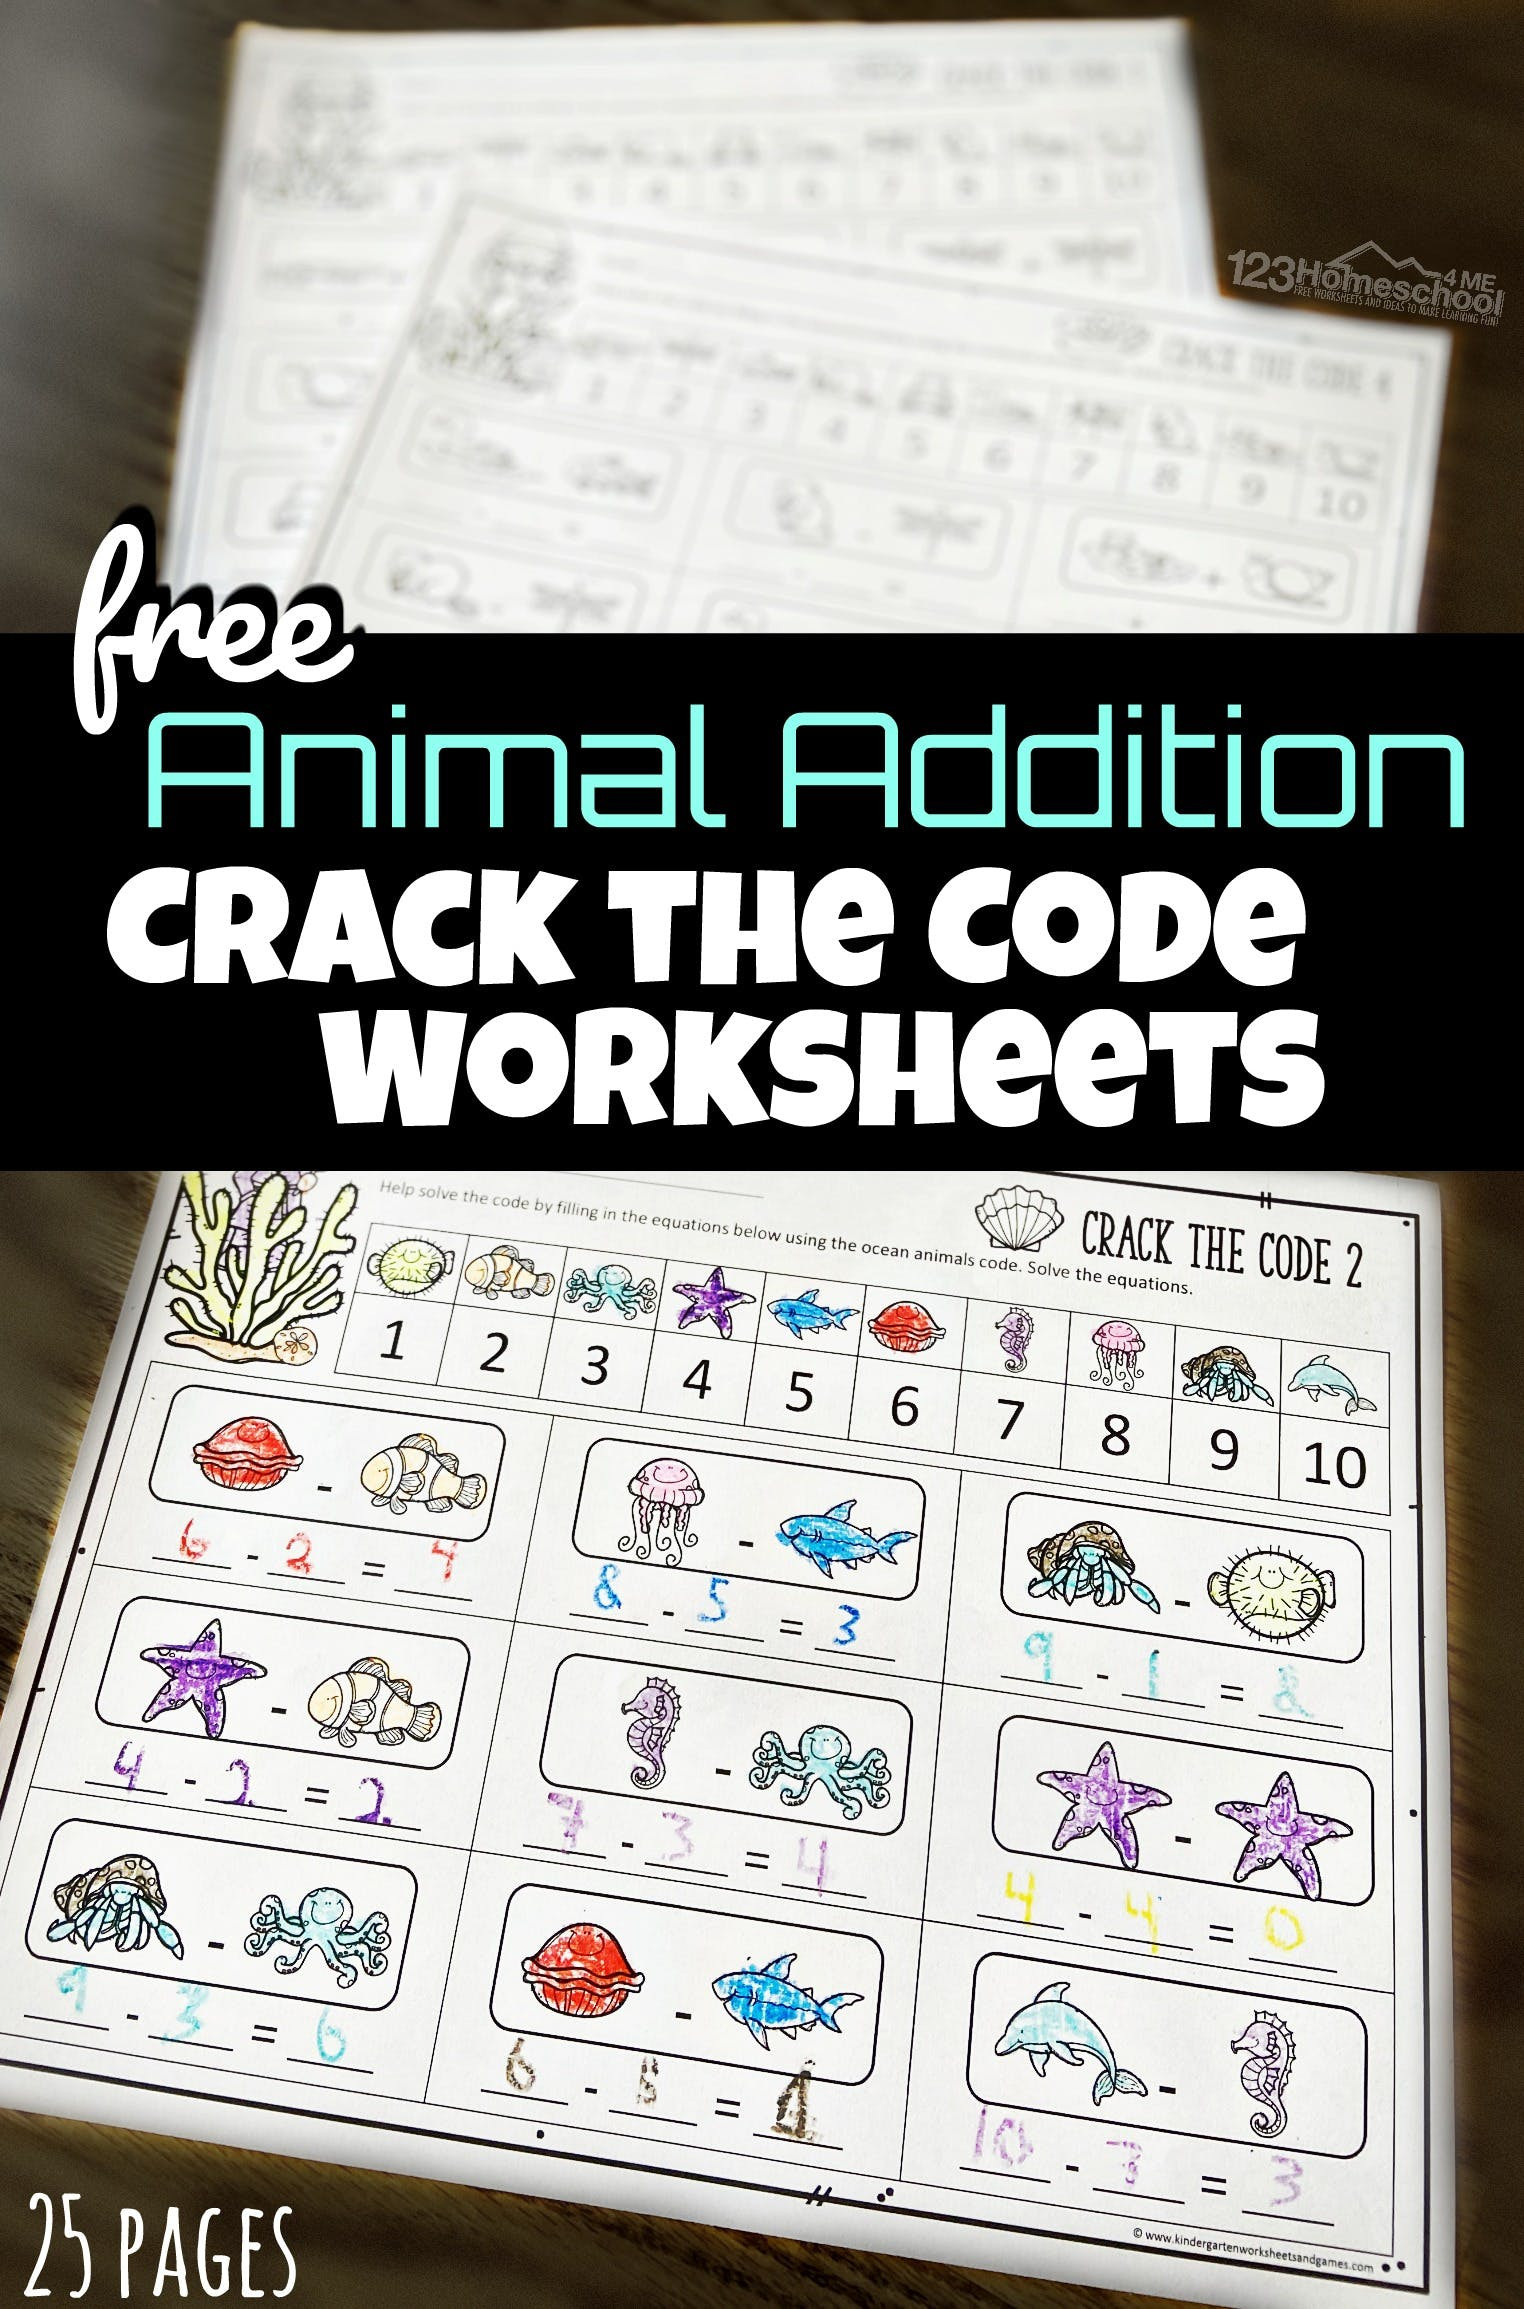 Crack the Code Math Worksheet Crack the Code Math Worksheets